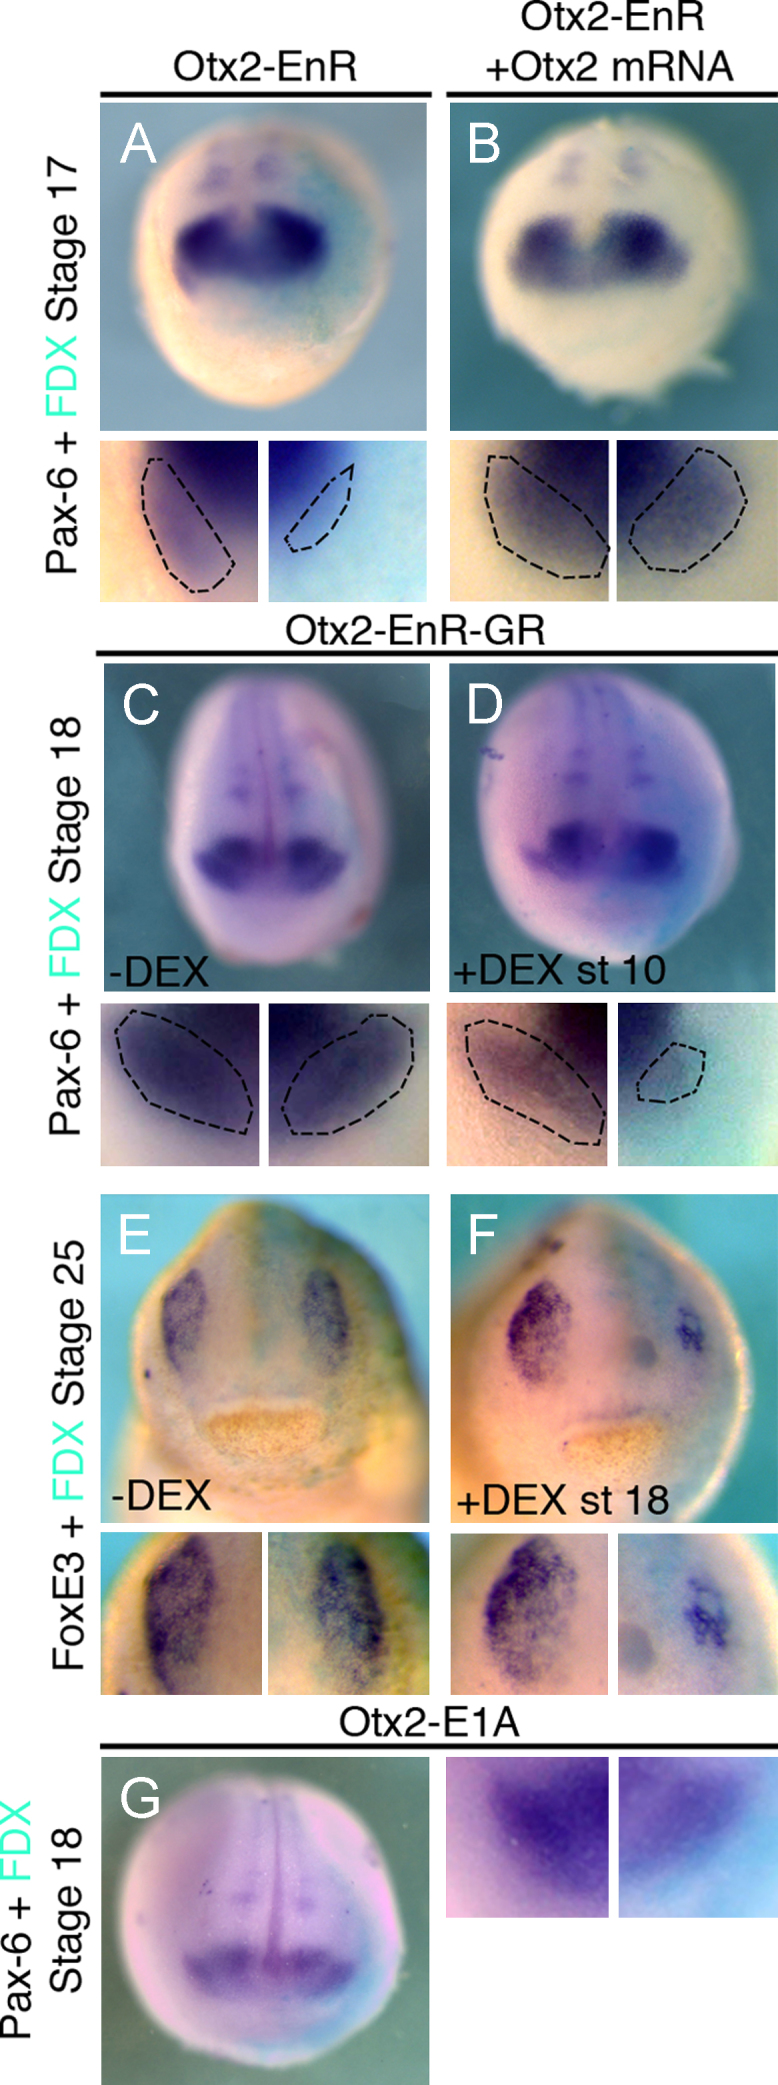 Activation of Otx2 target genes is required at early and late stages of lens placode formation. (A), (B) Otx 2 -EnR inhibits Pax 6 in the lens at stage 17 (50%, n =26). This is rescued by co-injection of Otx 2 ((B); inhibition reduced to 15%, n =20). (C)–(F) Activation of Otx 2 -EnR-GR at stage 10 reduces lens-specific Pax 6 at stage 18 ((D) 52%, n =25); without DEX Pax 6 expression is normal ((C) 0% affected, n =23). FoxE 3 at stage 25 is normal without DEX ((E) 0% affected, n =30), while addition of DEX at stage 18 leads to reduction ((F) 64%, n =22). (G) Otx 2 -E 1 A activates Otx2 targets but does not affect lens Pax 6 (0% affected, n =25). All embryos were injected into the A3 blastomere at the 32-cell stage and are shown in frontal view with dorsal to the top. High magnifications of the lens region are shown below each panel; dotted lines demarcate placodal Pax 6. Turquoise staining reveals the lineage tracer FDX.